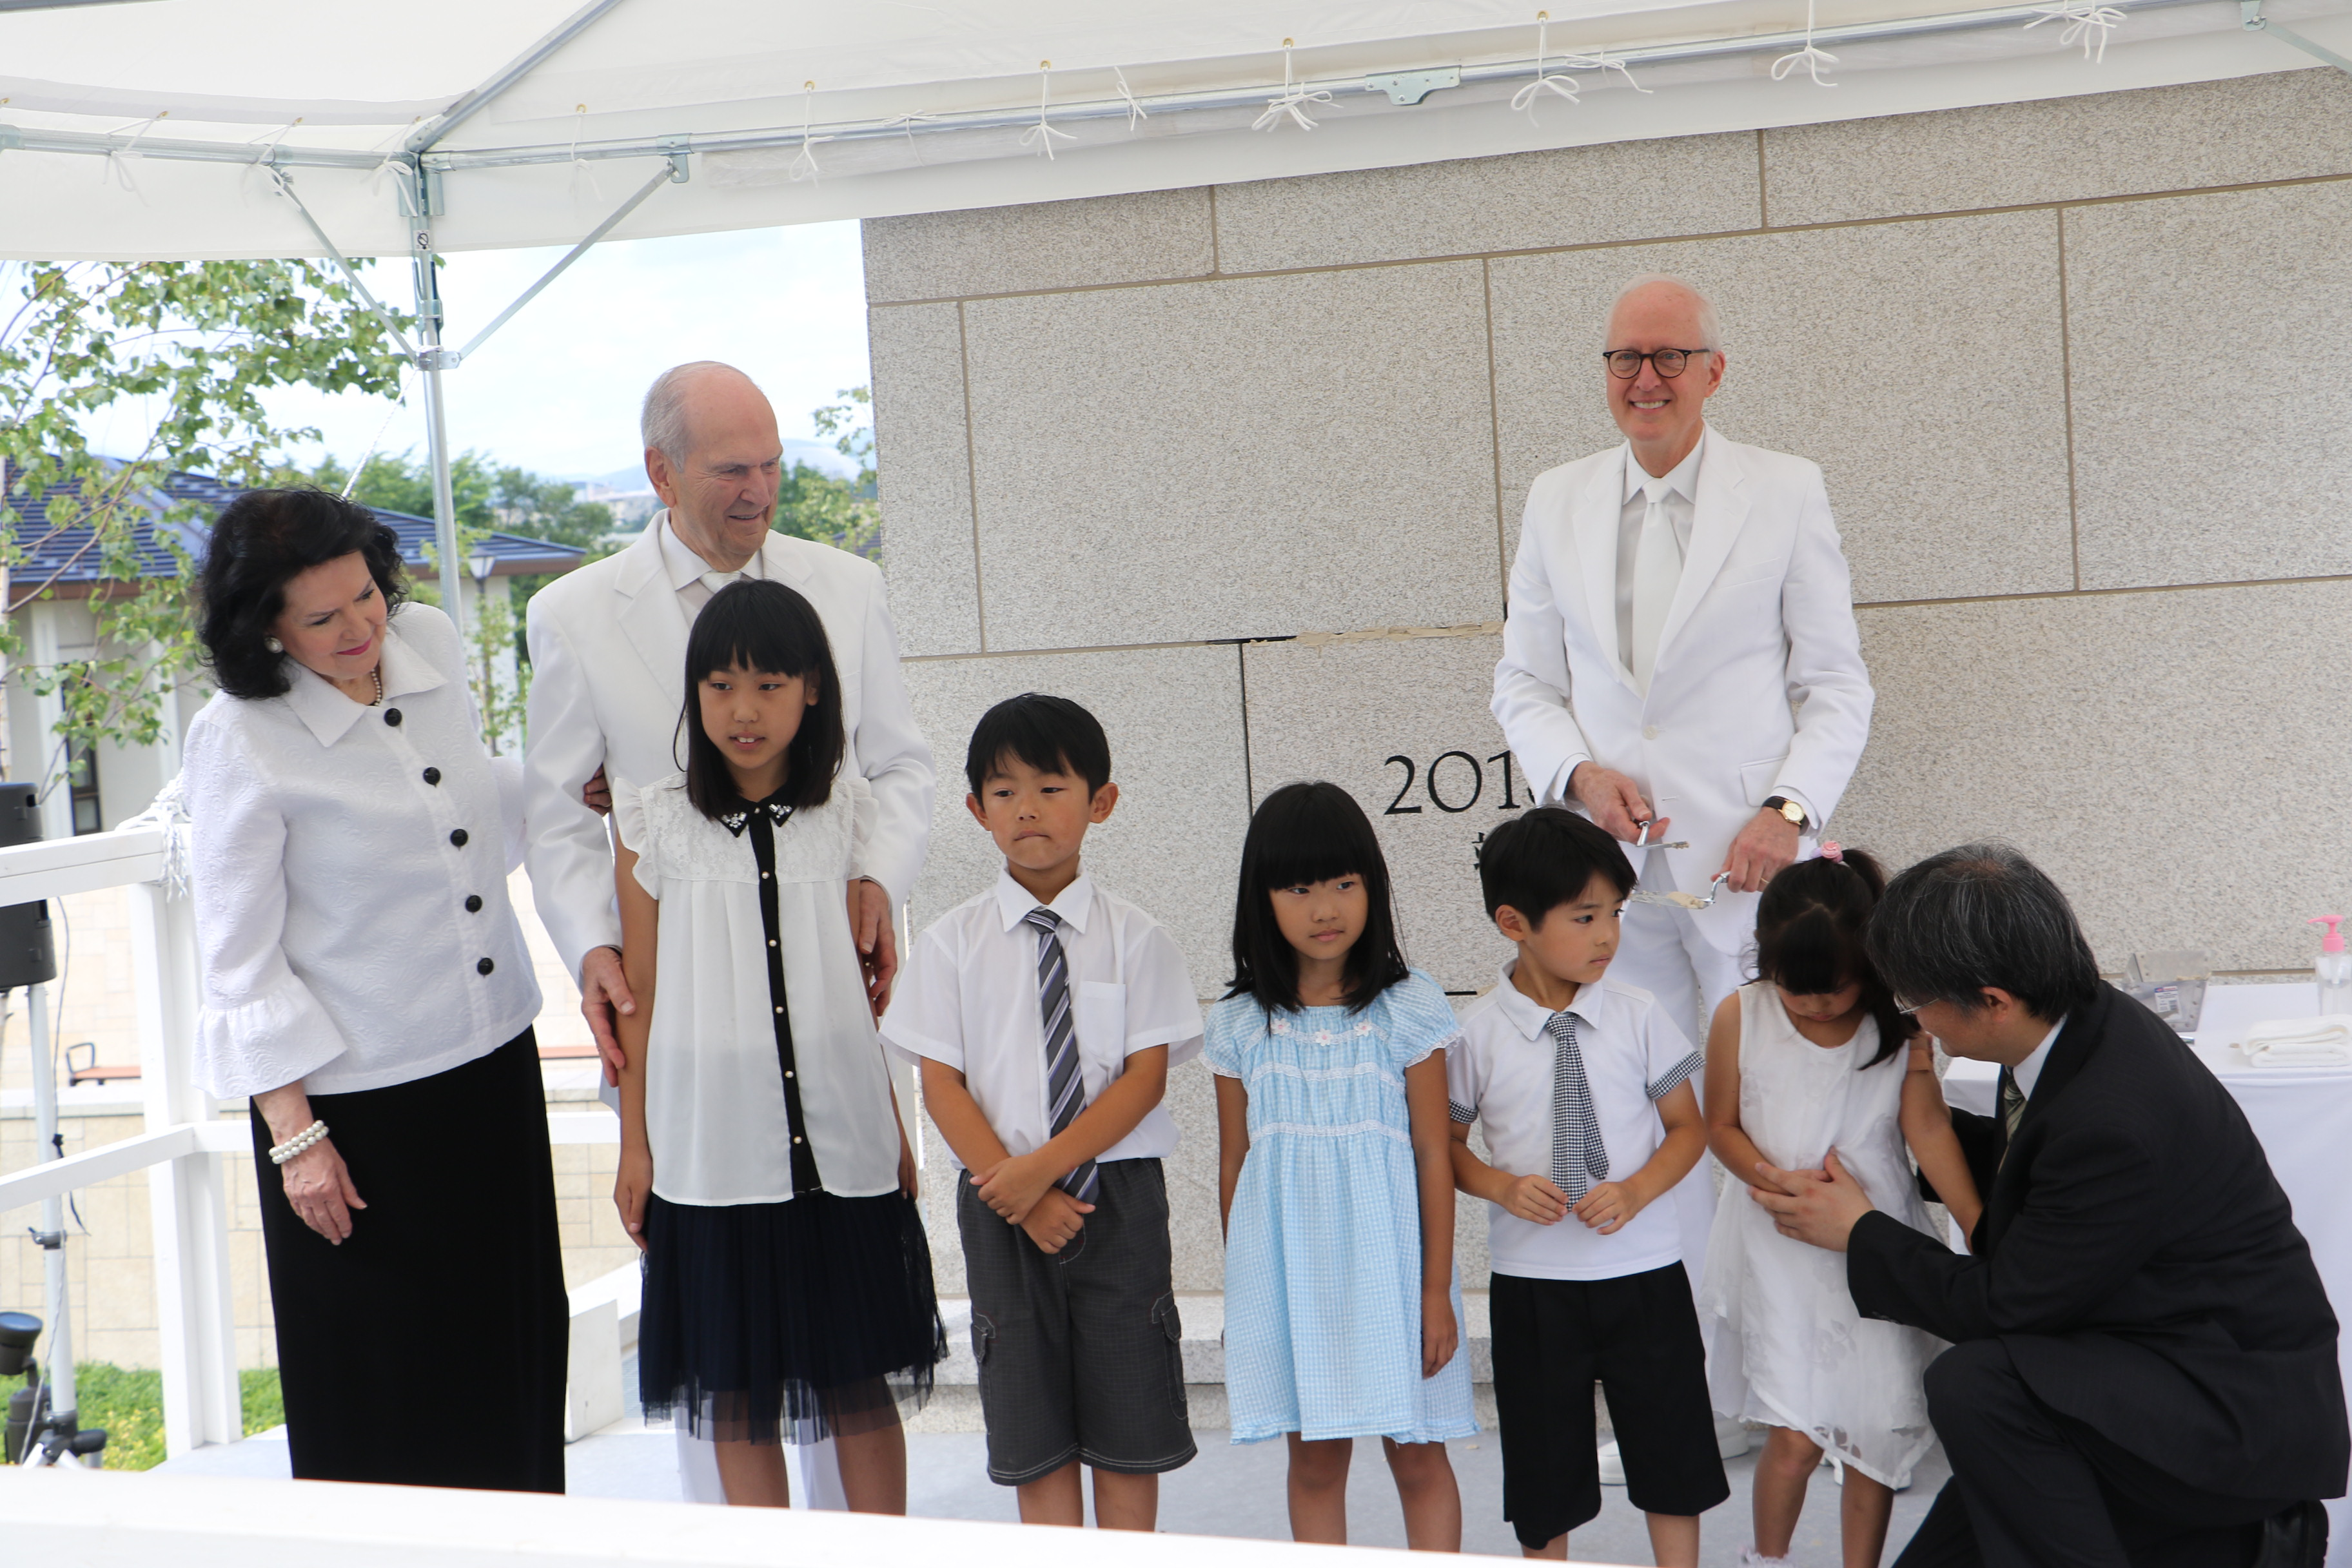 During a cornerstone ceremony for the Sapporo Japan Temple, President Russell M. Nelson and his wife, Sister Wendy Nelson, stand with children invited to participate, from left, Kuhi Kikuchi, 10; Ryuto Miyamoto, 8; Hina Iwamoto, 7; Kaito Miyamoto, 6; and Miku Nigita, 4, who is helped by her father, Haruhiko Nigita. Elder Elder Larry Y. Wilson of the Seventy looks on from behind.